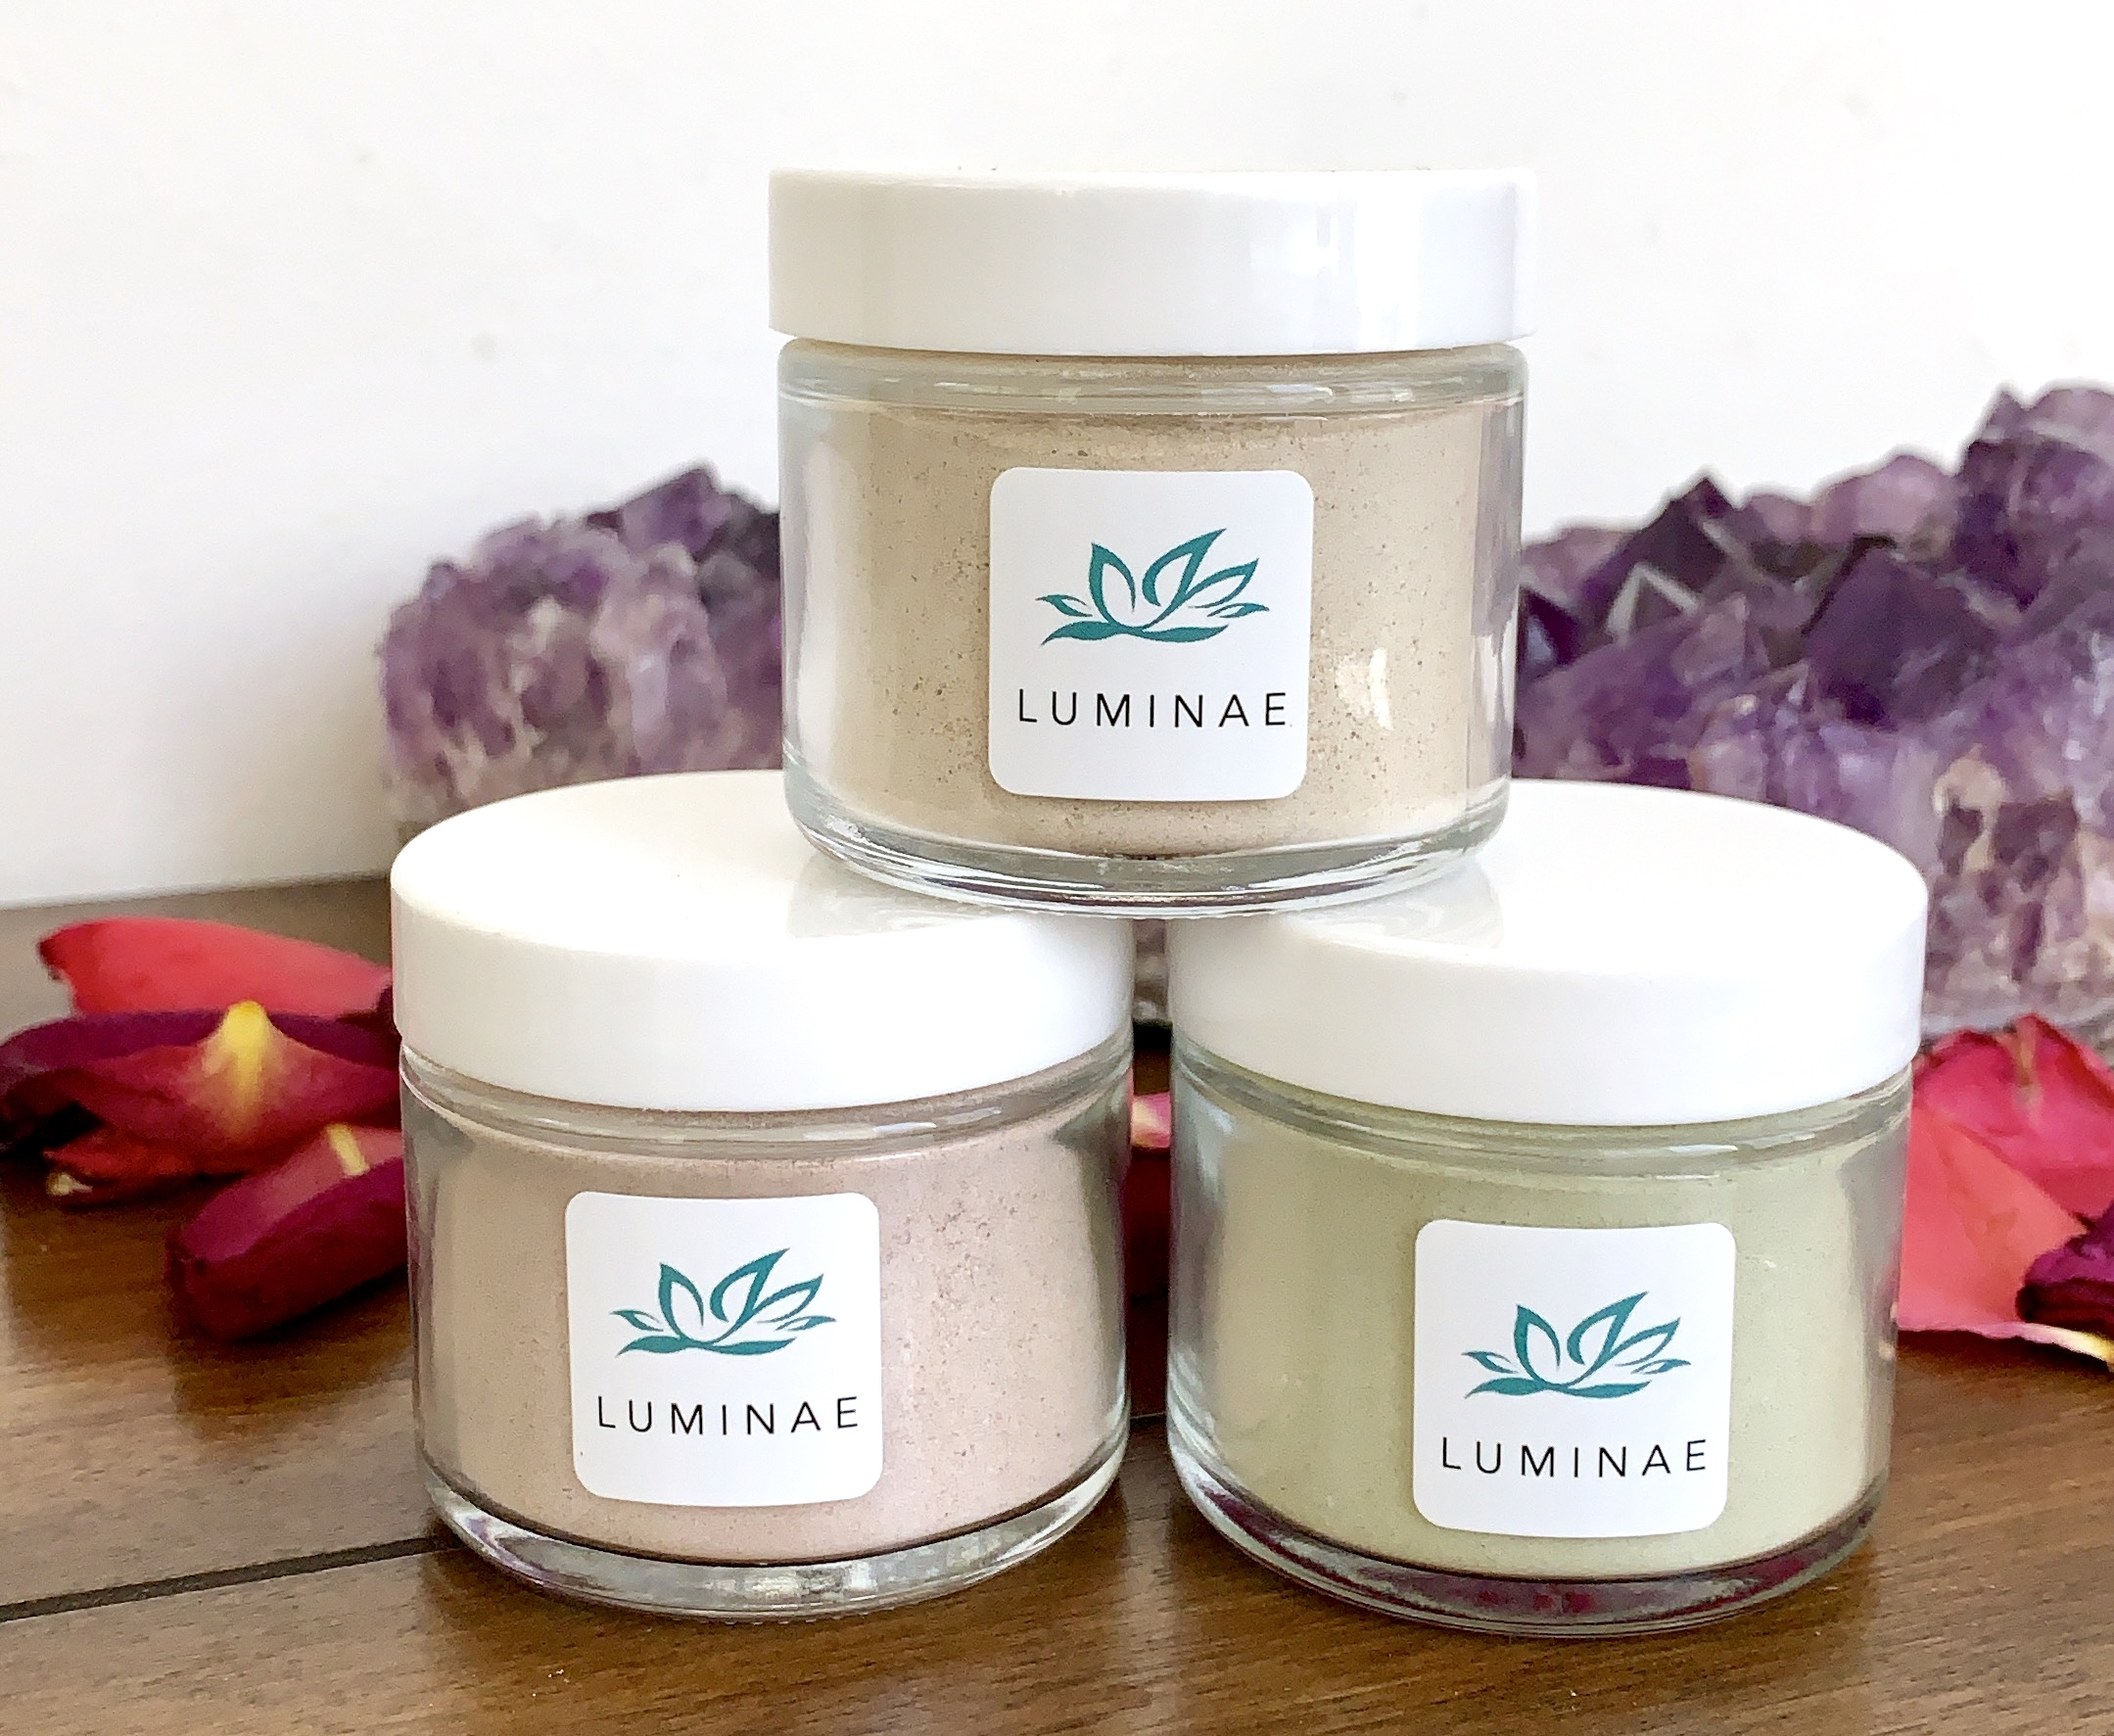 Face Masks - Luminae Face Masks are handcrafted blends using plant botanicals. Each blend is made with the highest quality ingredients and without any fillers, chemical toxins, preservatives, or artificial fragrances. Face Masks help to increase skin brightness, reduce acne, decrease inflammation, clarify the complexion, soften wrinkles, improve elasticity, and enhance skin rejuvenation.